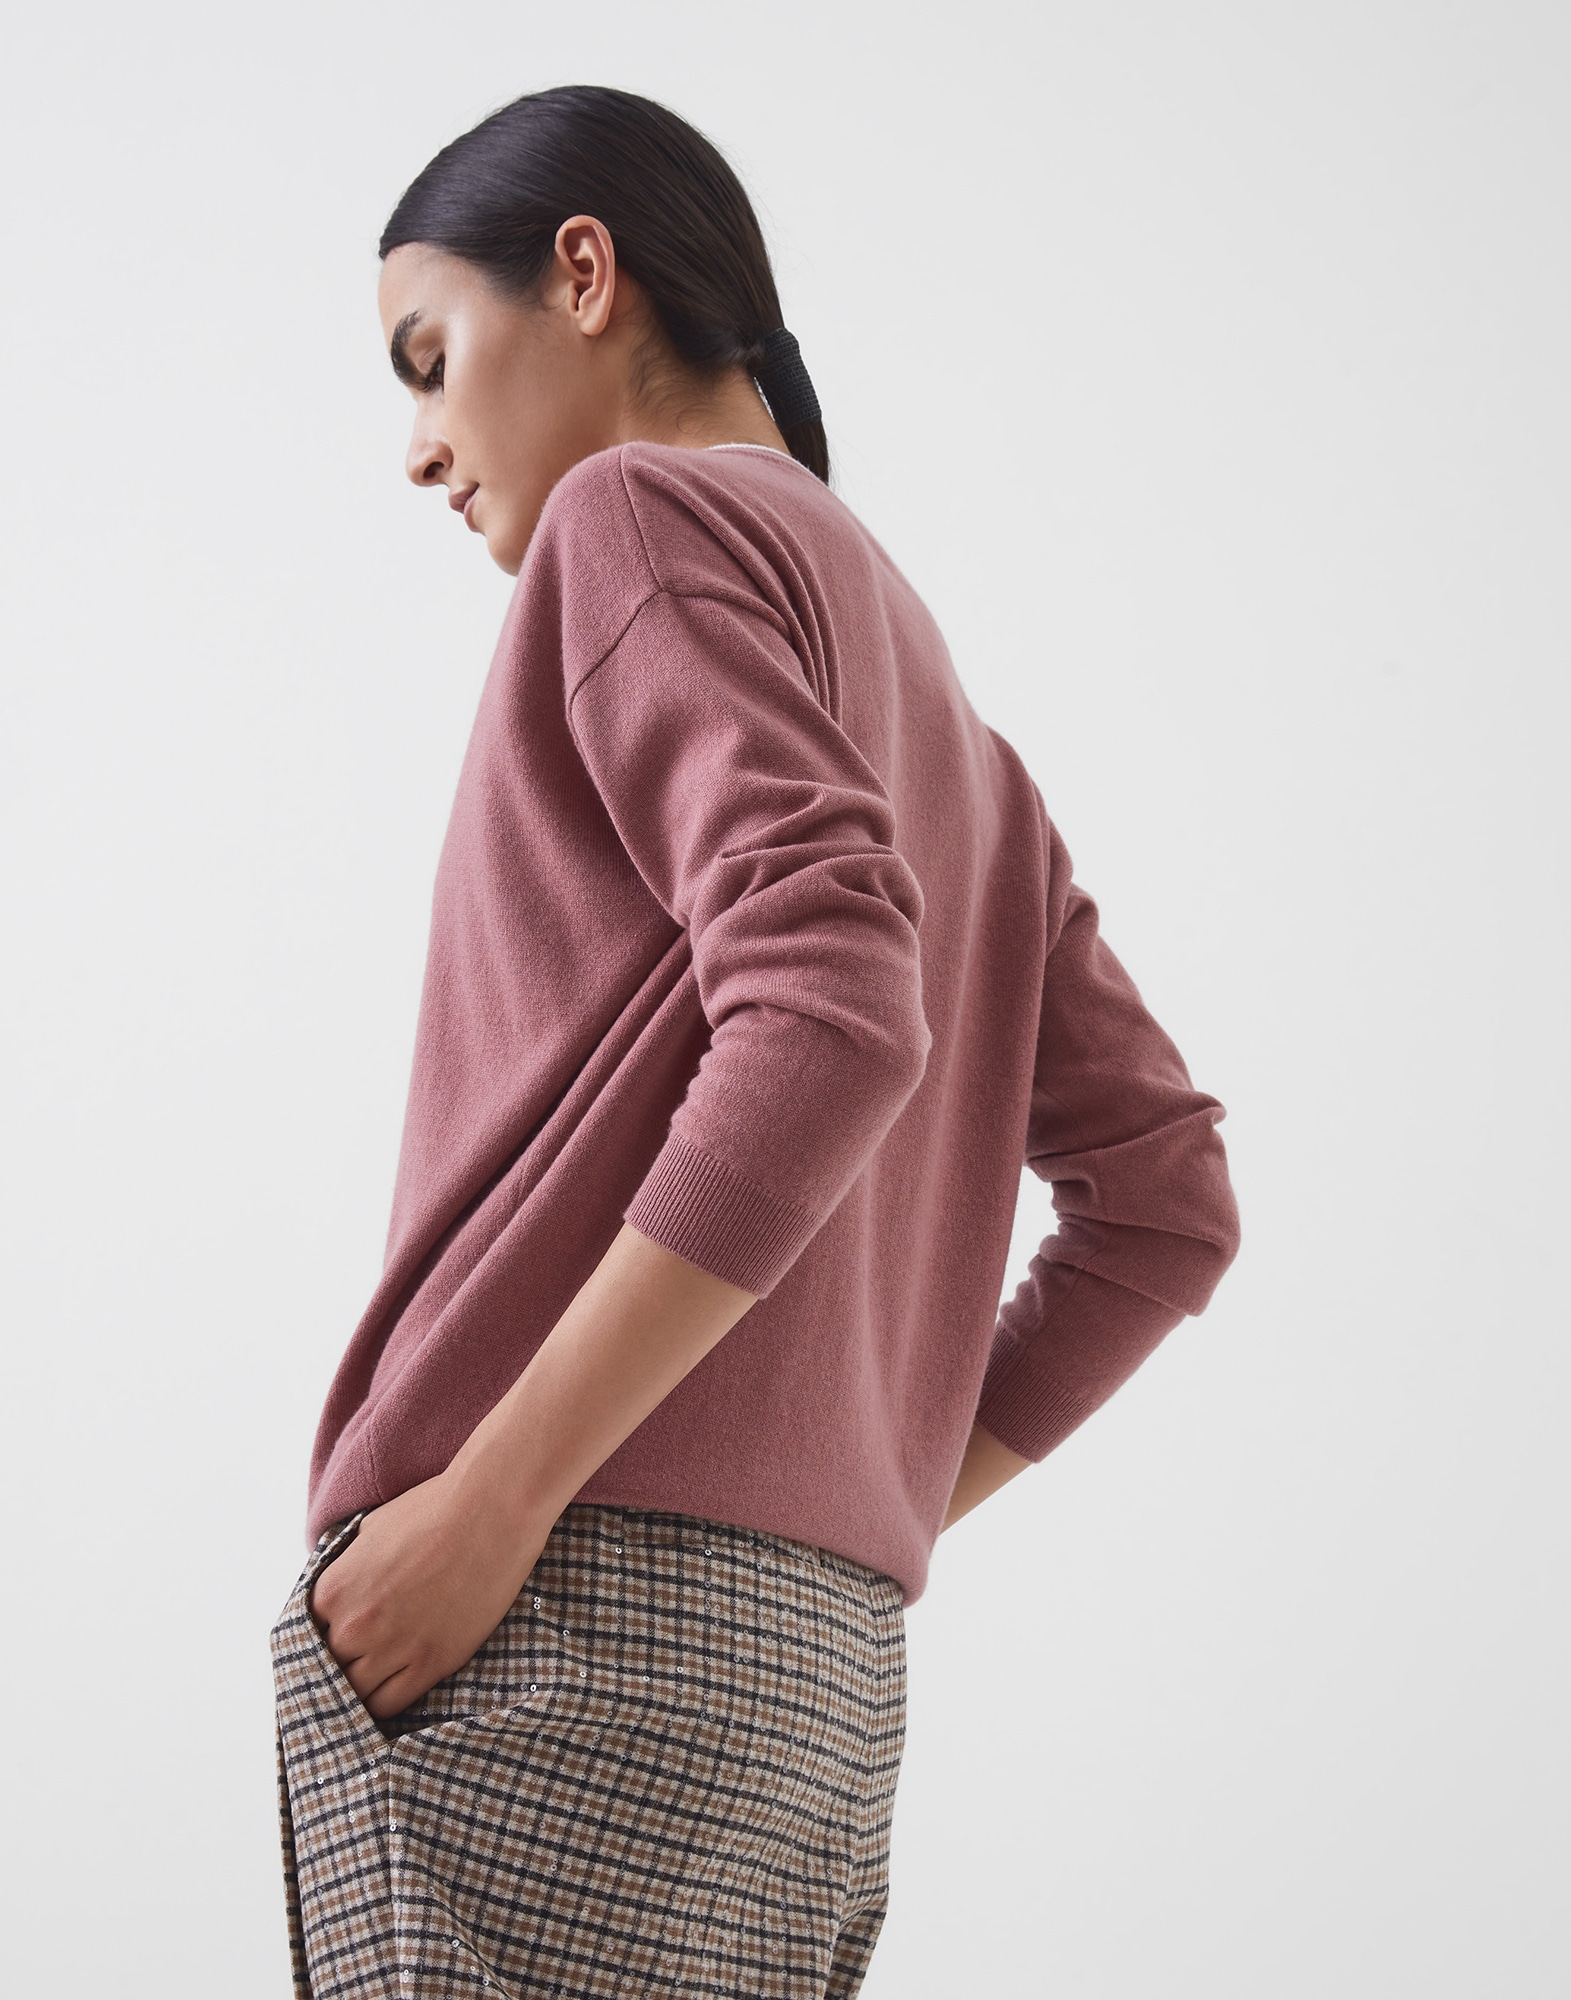 V-neck Sweater Pink Woman 2 - Brunello Cucinelli